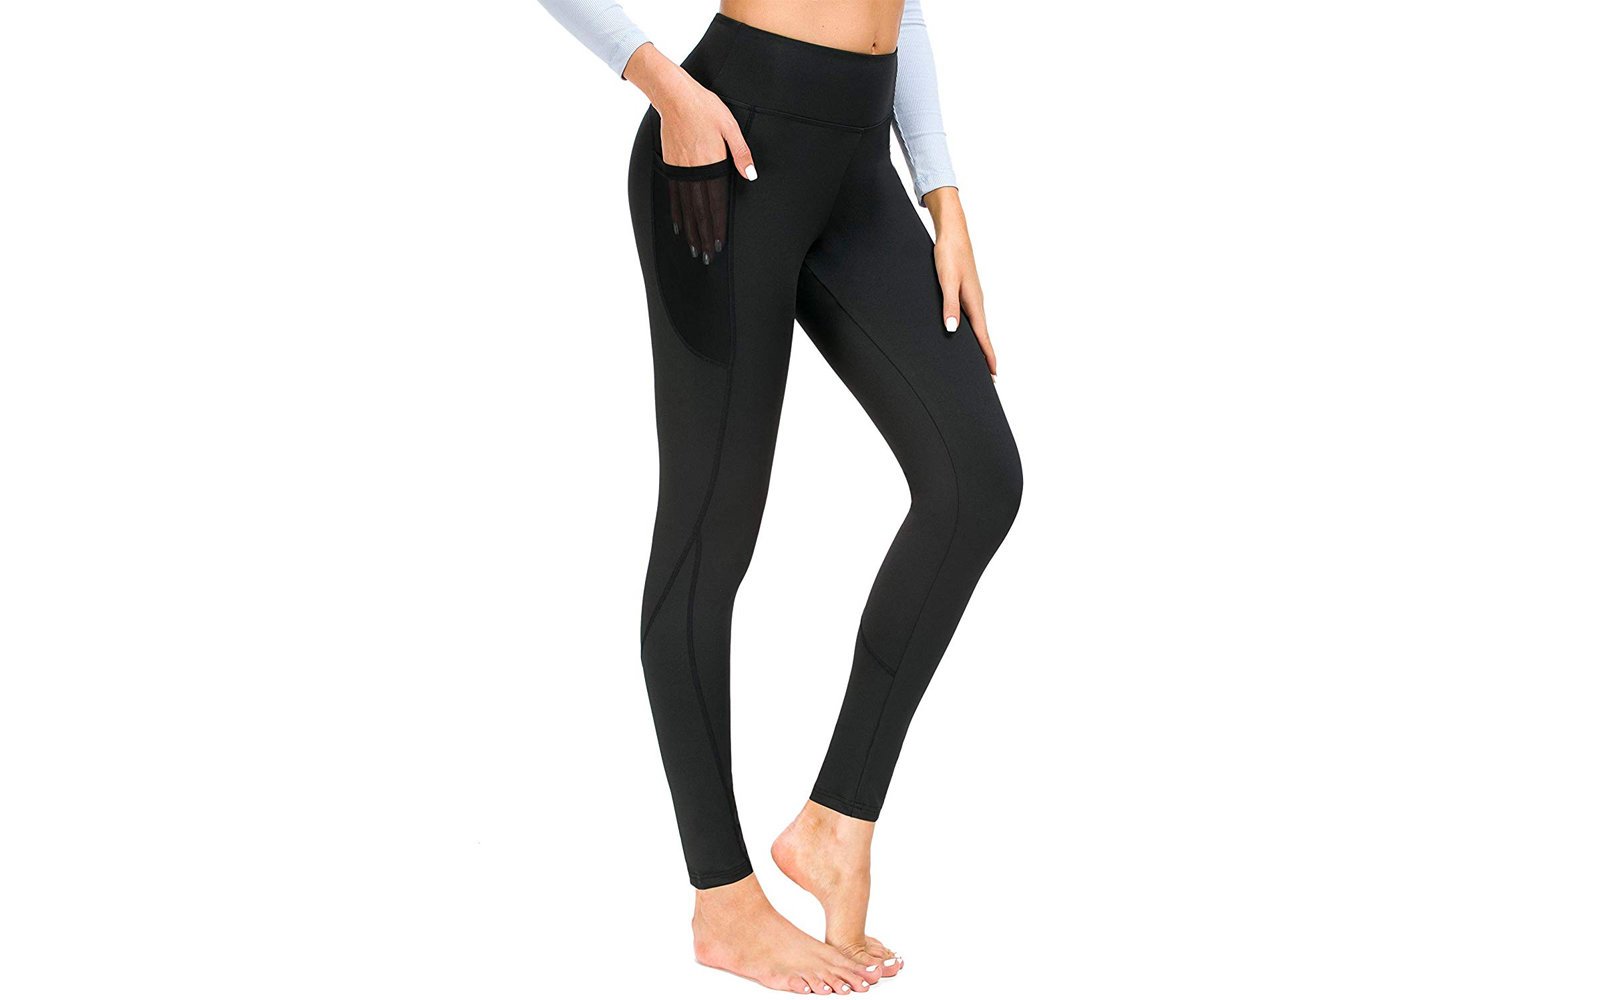 5b8a1fa9250b5 8 Super-comfy Leggings With Pockets Big Enough for Your Phone ...